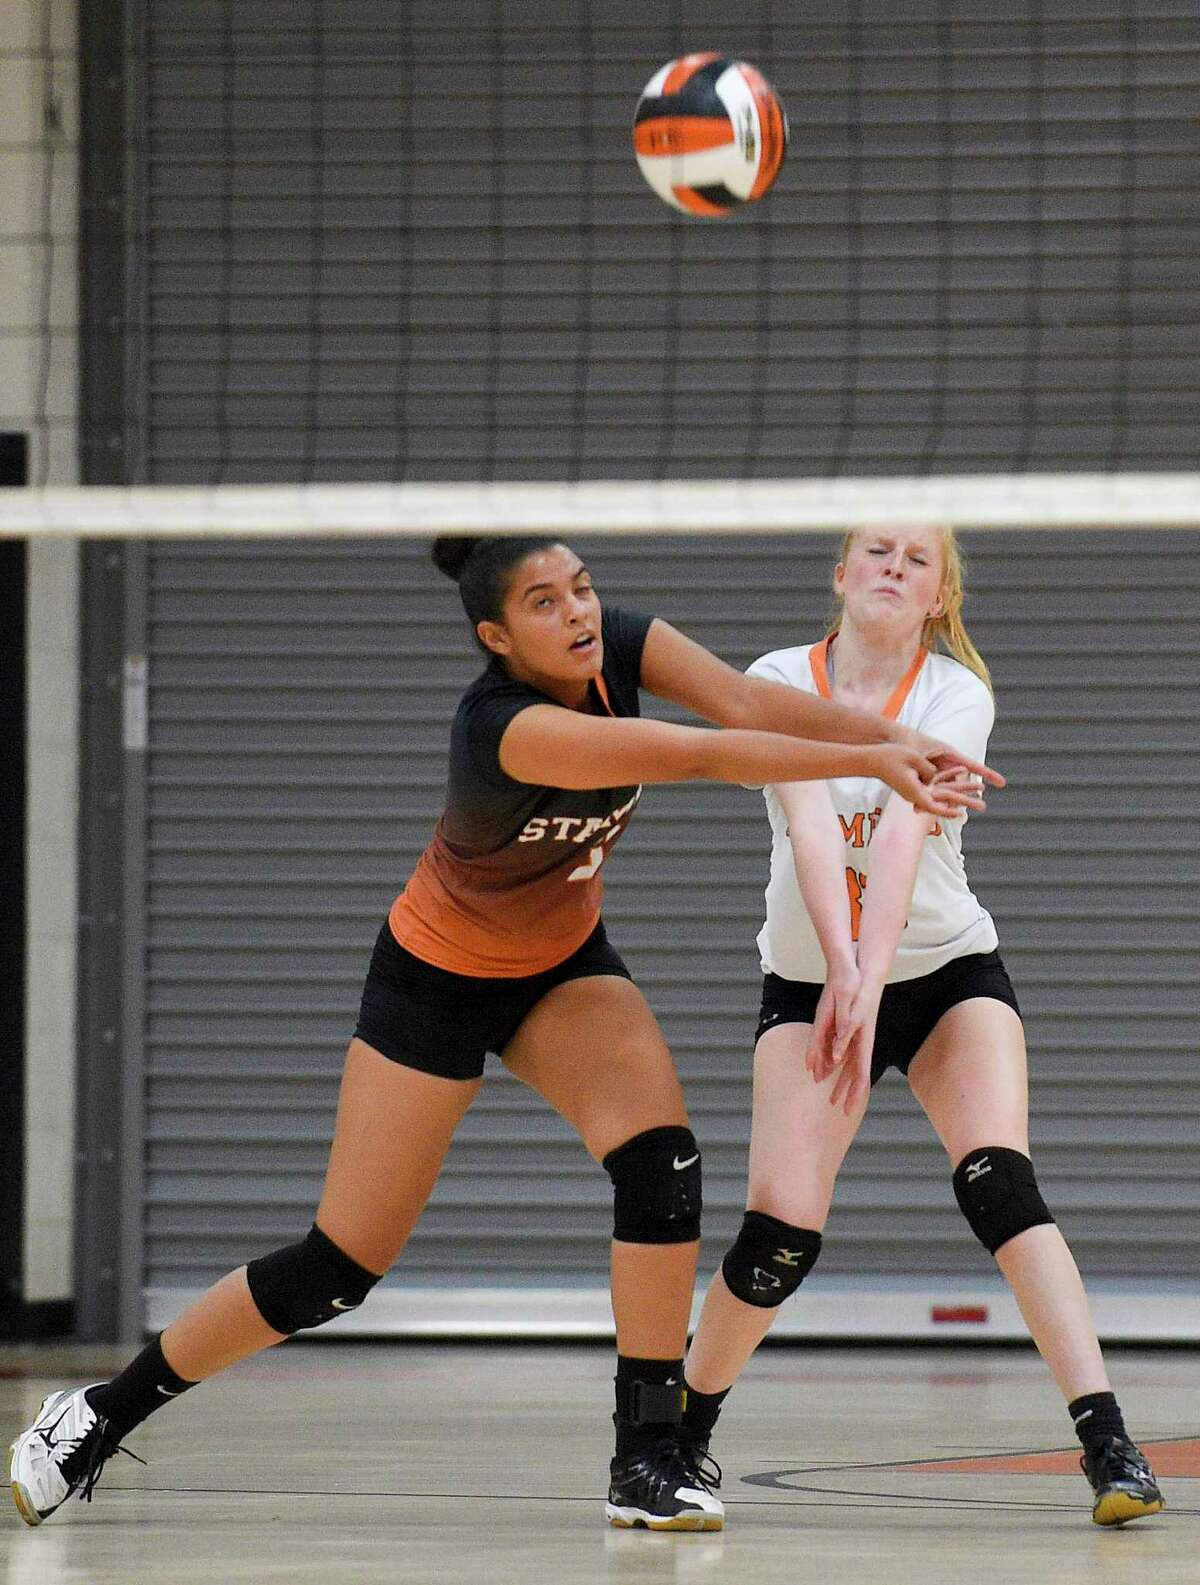 Stamford's Liani Mercado (3) and Morgan Yacavone (33) get under a service from Trinity Catholic during a girls volleyball match in Stamford on Oct. 23, 2019. Stamford went on to sweep Trinity Catholic in three sets 25-19, 30-28, 25-8.